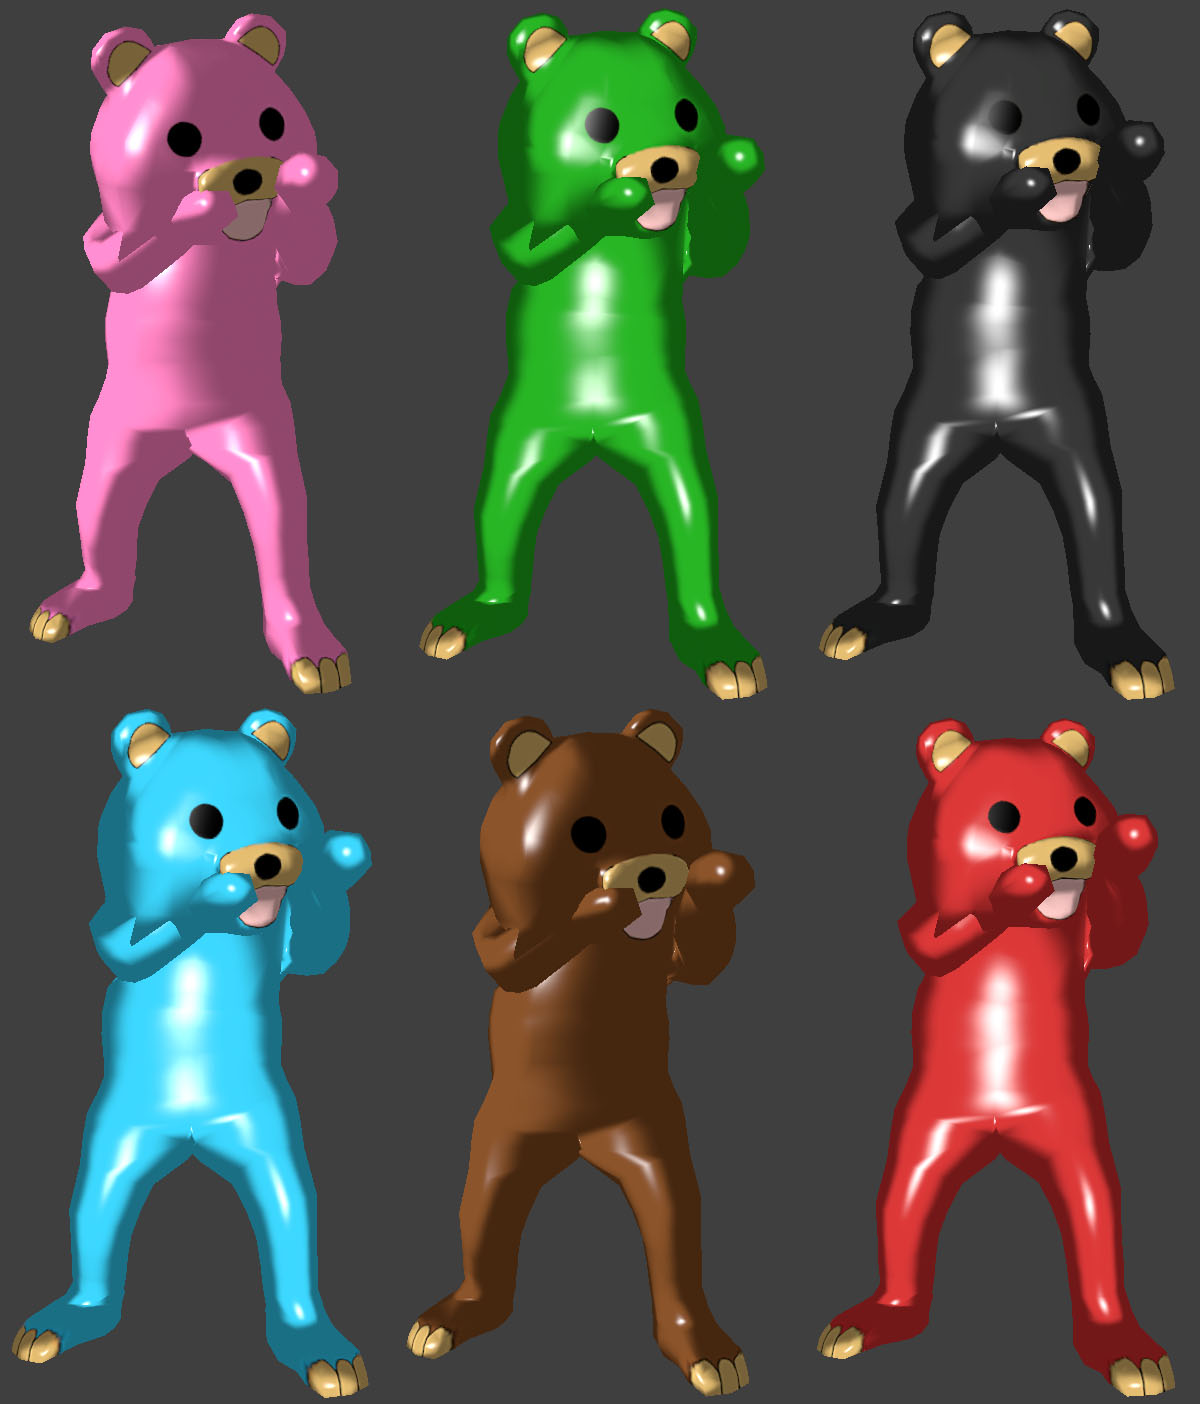 Pedobear Pack (KnifeLemon - Pink, Green, Black, Blue, Brown, Red)